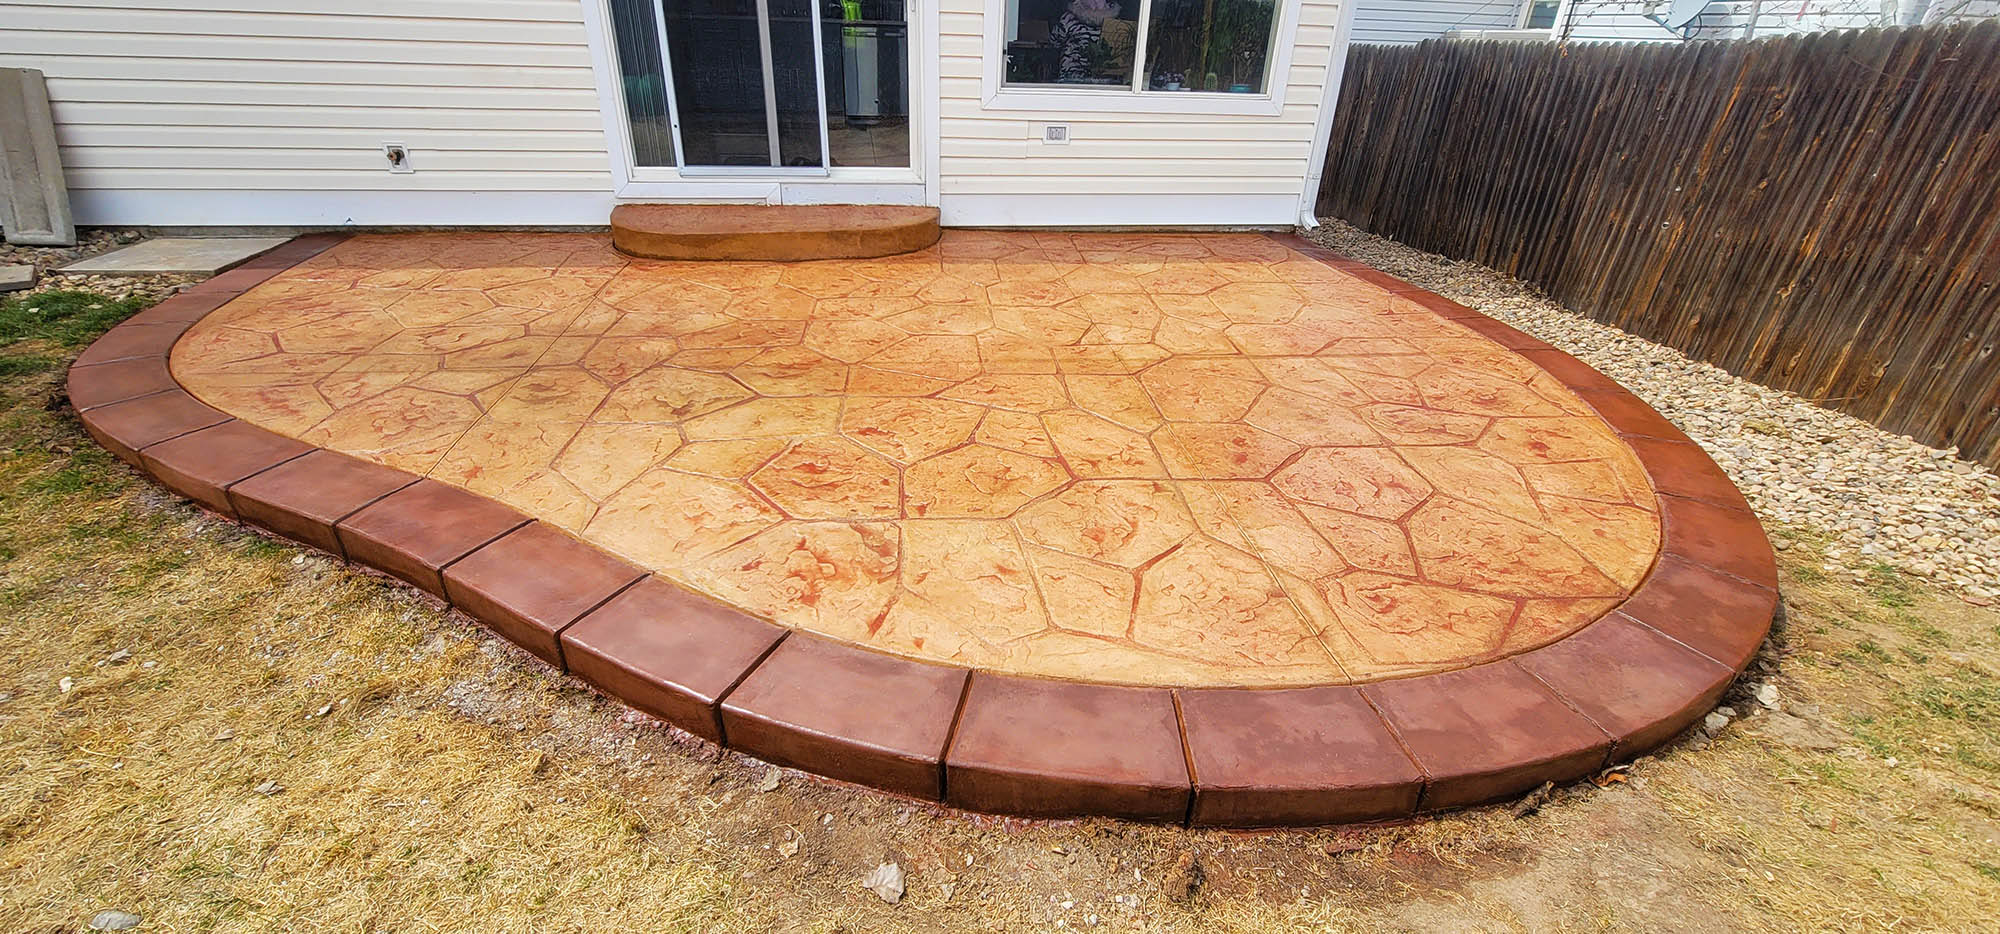 Green Valley, Denver CO stamped concrete patio